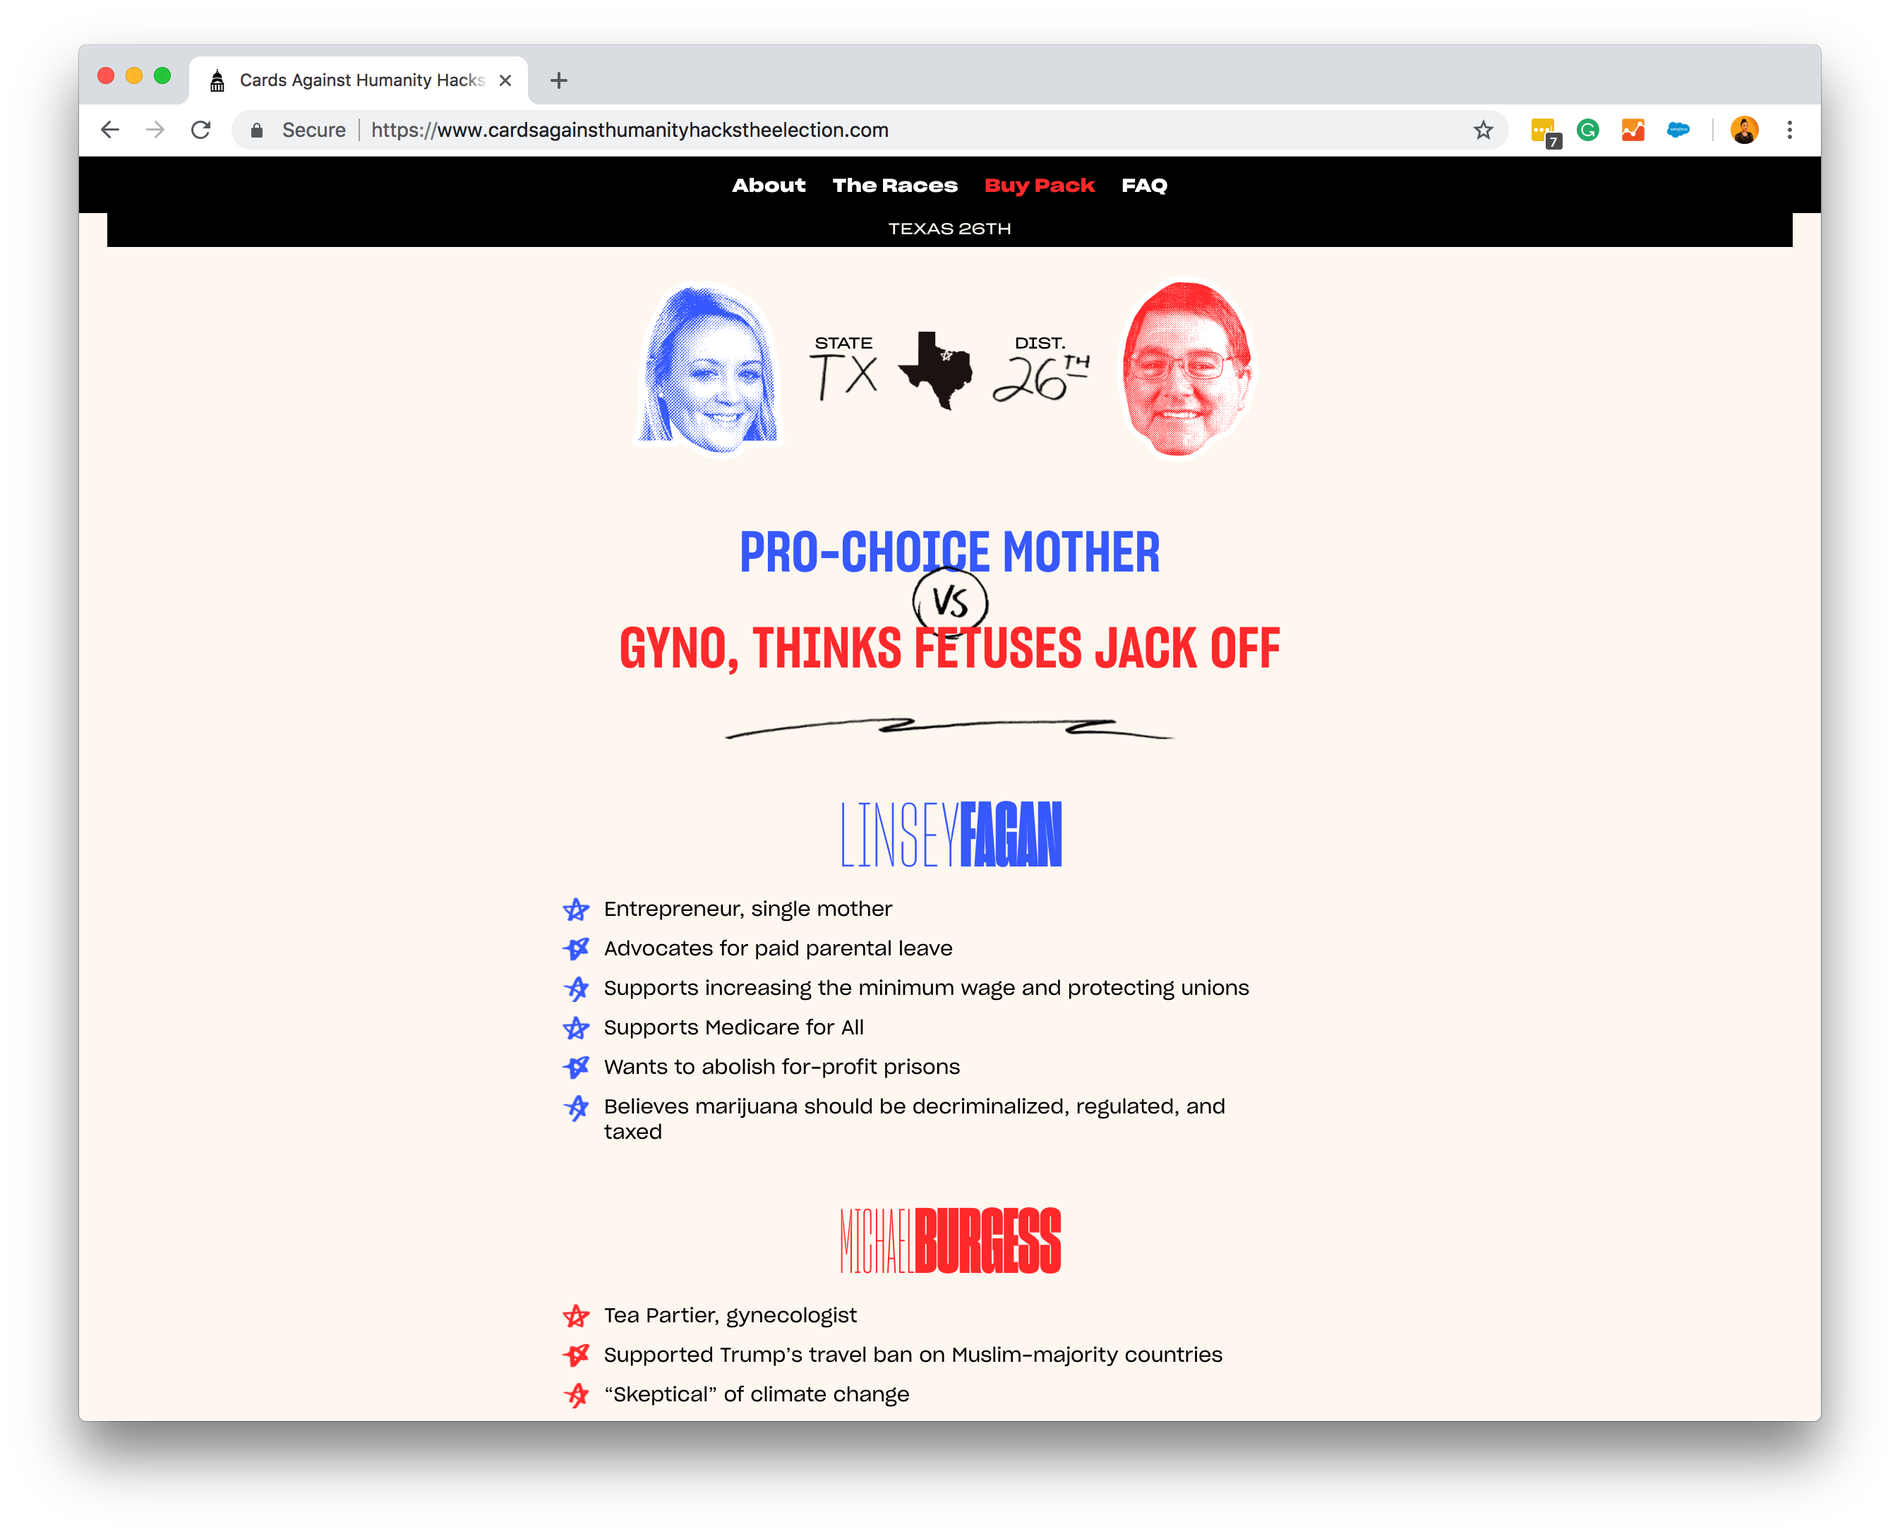 Sharp-Type-Cards-Against-Humanity-Hacks-Election-Web-TX-8